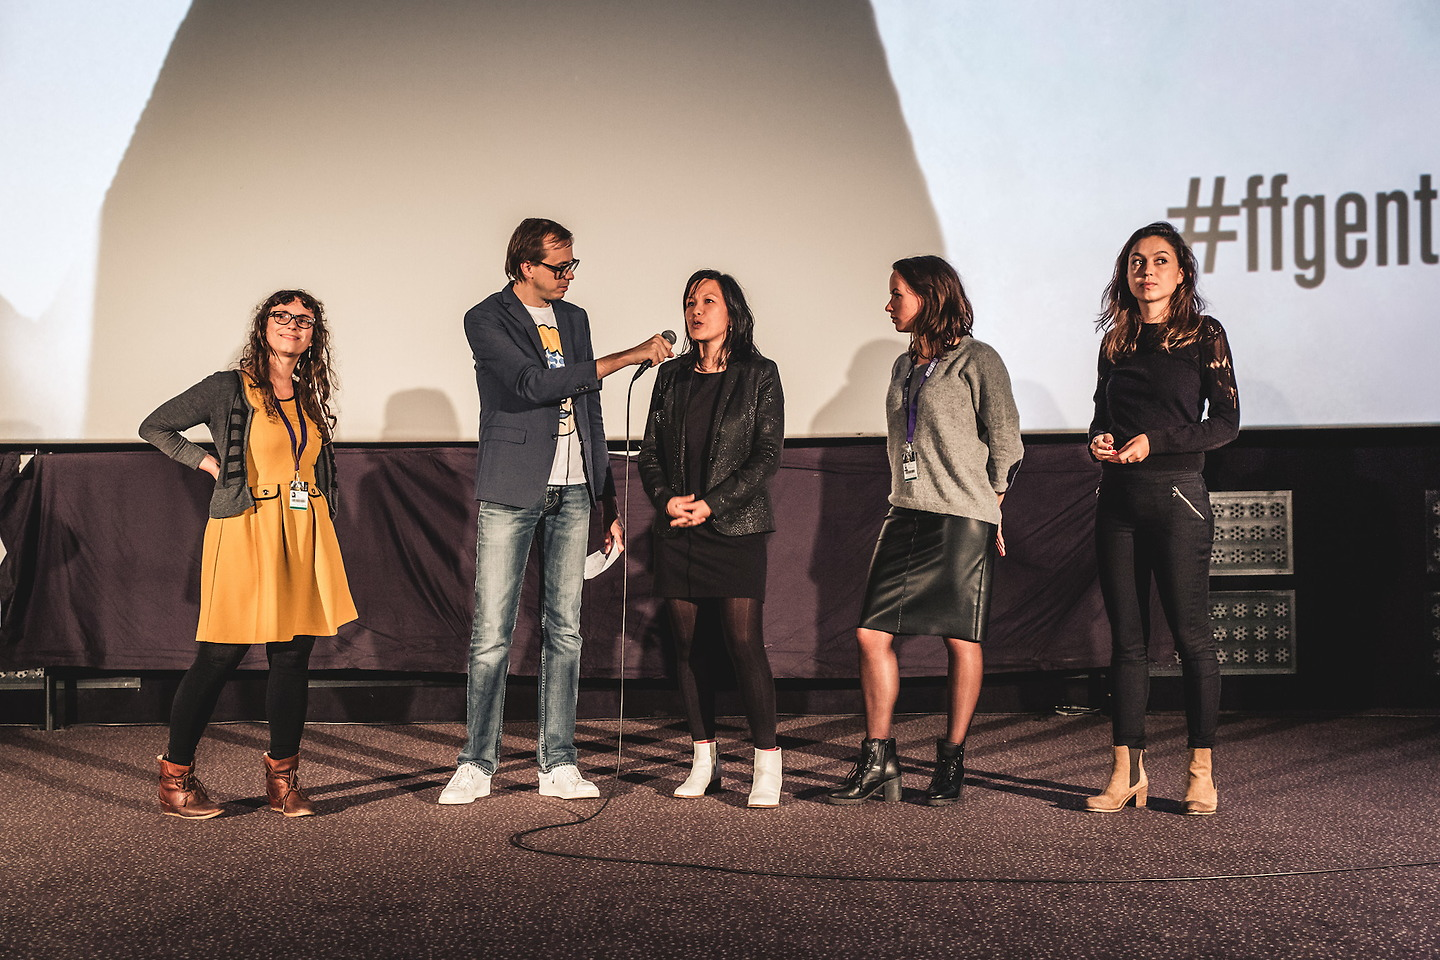 Film Fest Gent - Competition for European Shorts